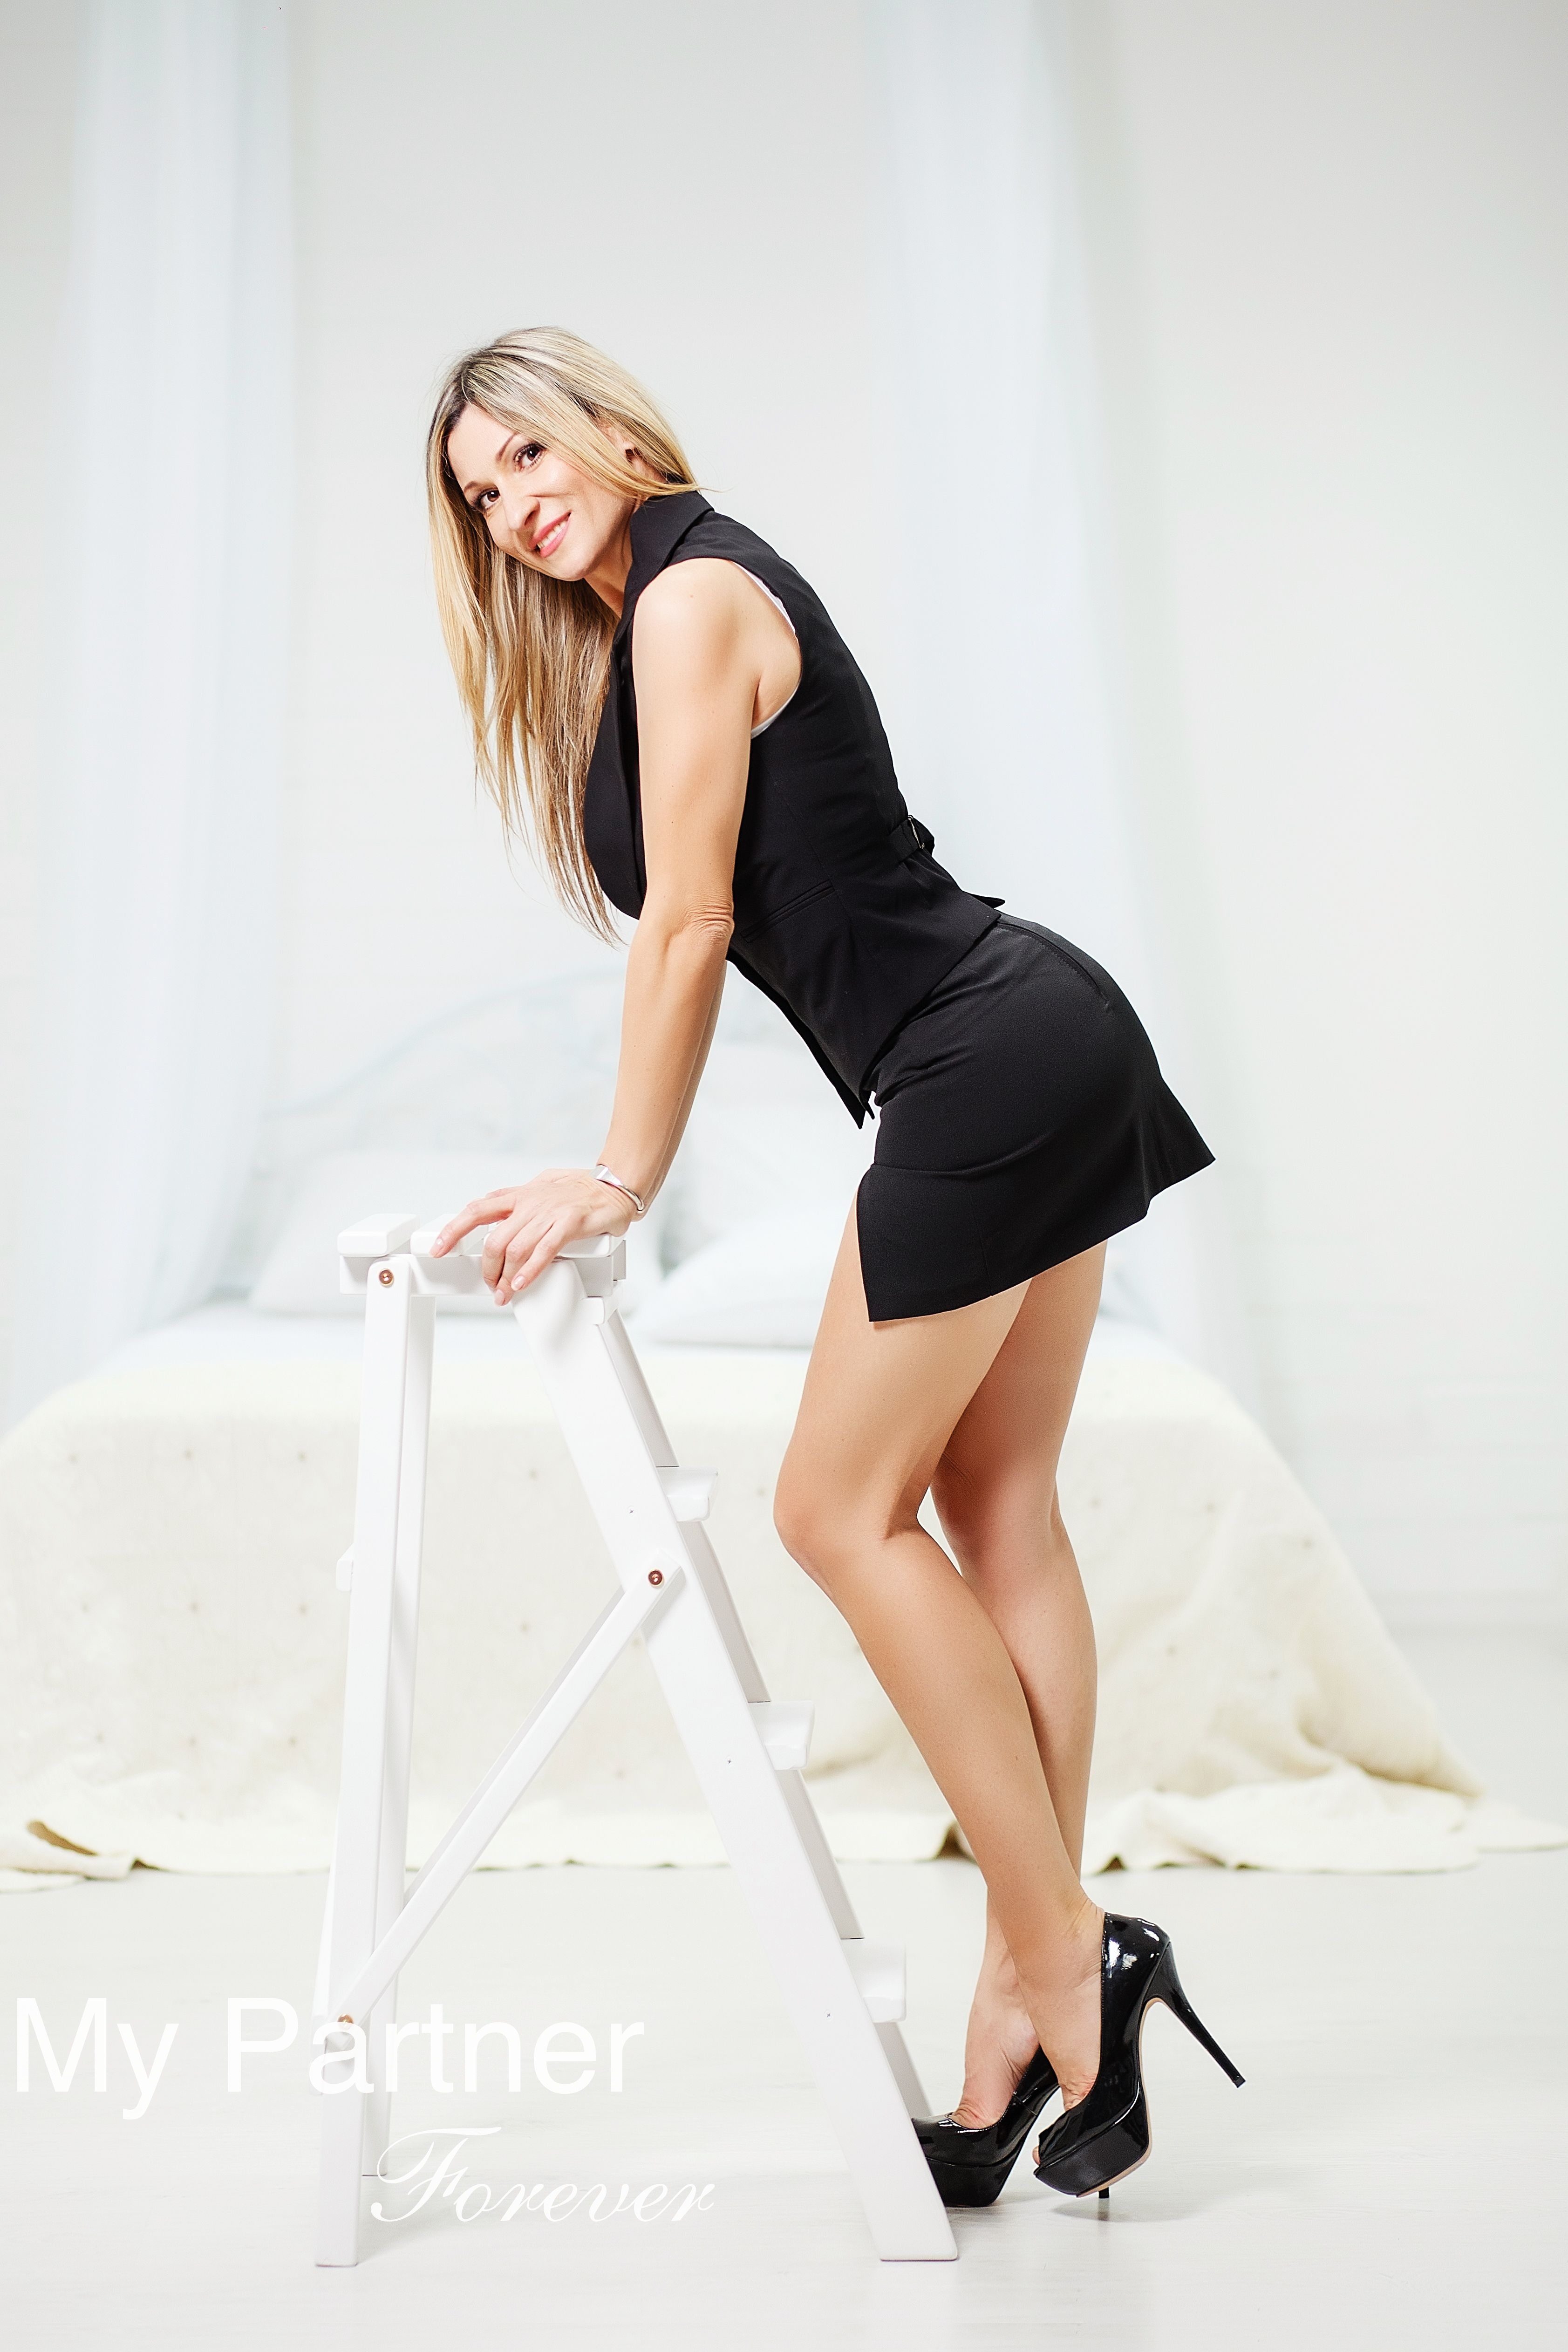 larisa mature dating site Dating russian women bride larisa from odessa, ukraine for marriage you can write directly to the russian brides email address maturelarisa: larisa: i am a modern, intelligent woman with mature .